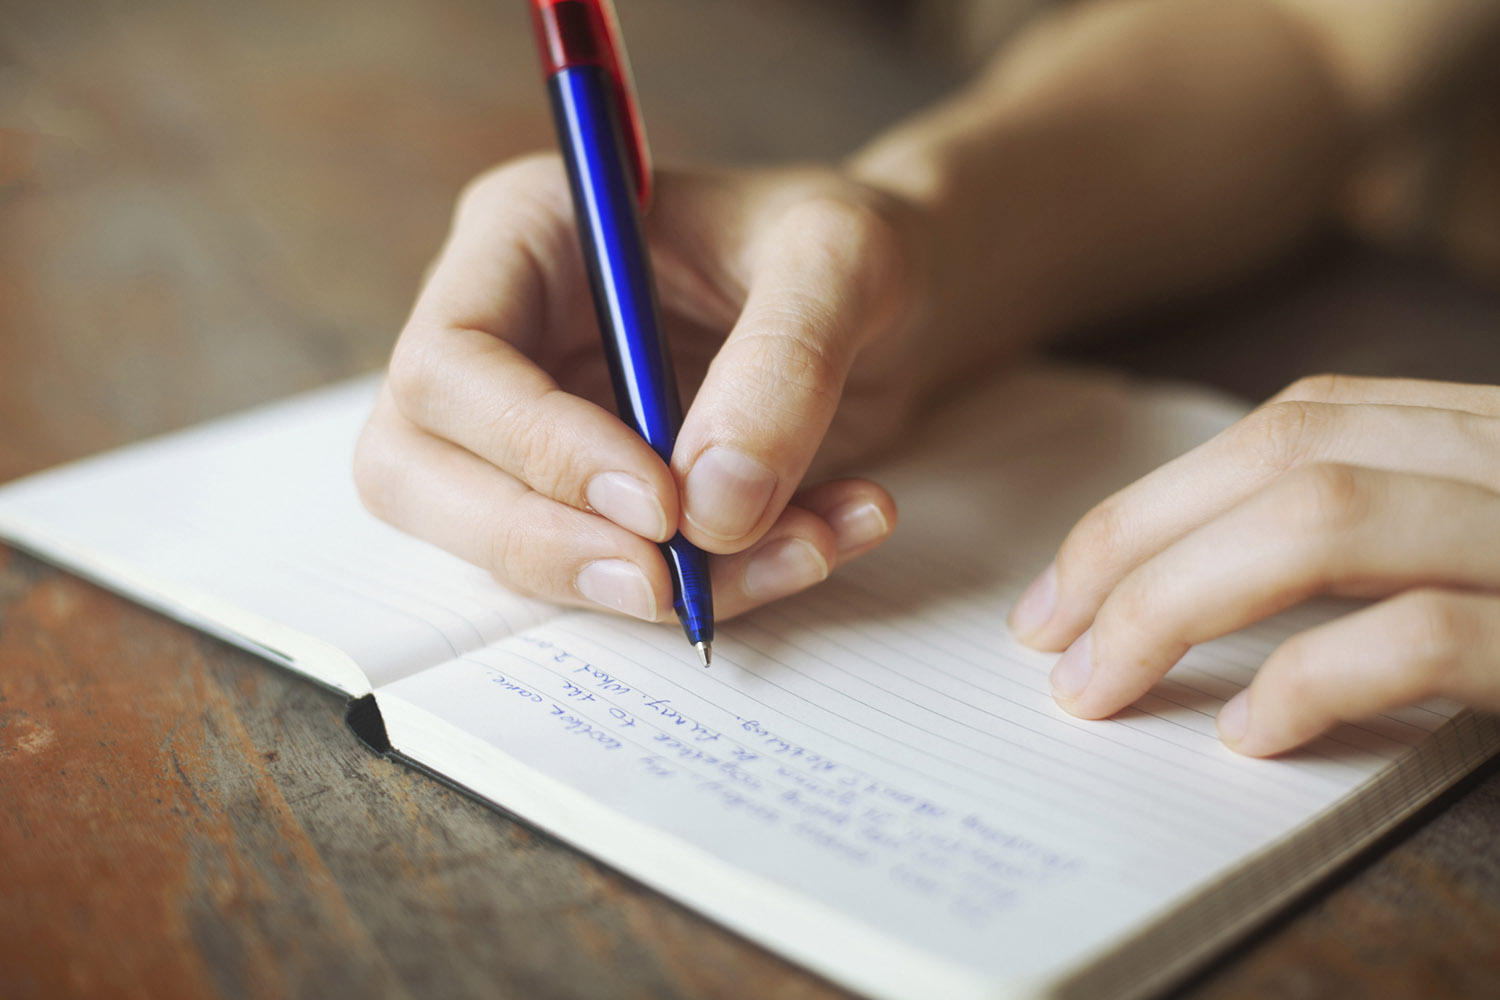 a student writing